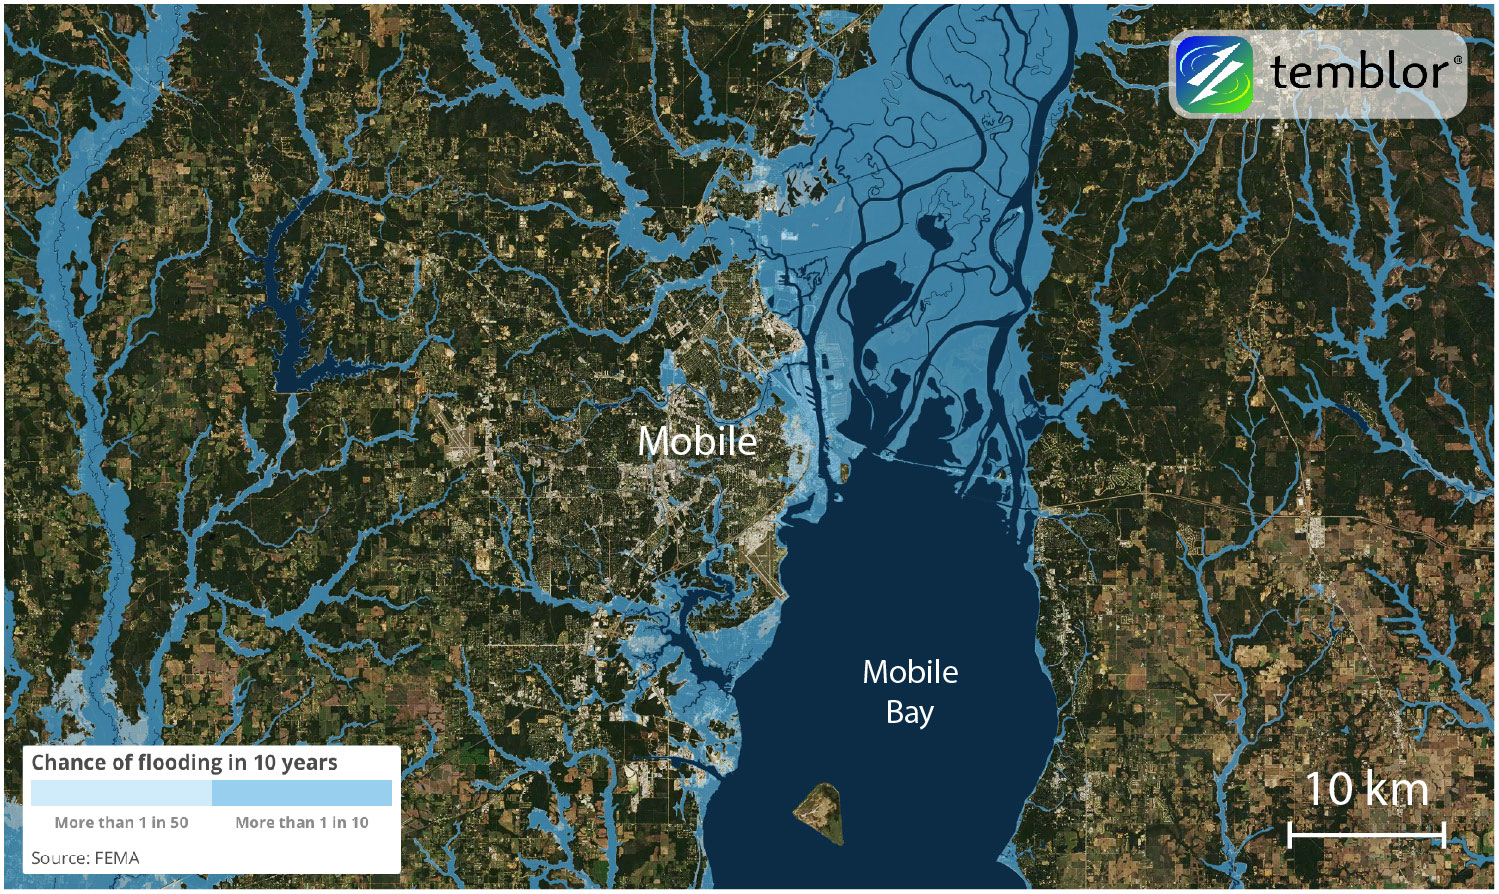 Mobile-alabama-flood-map